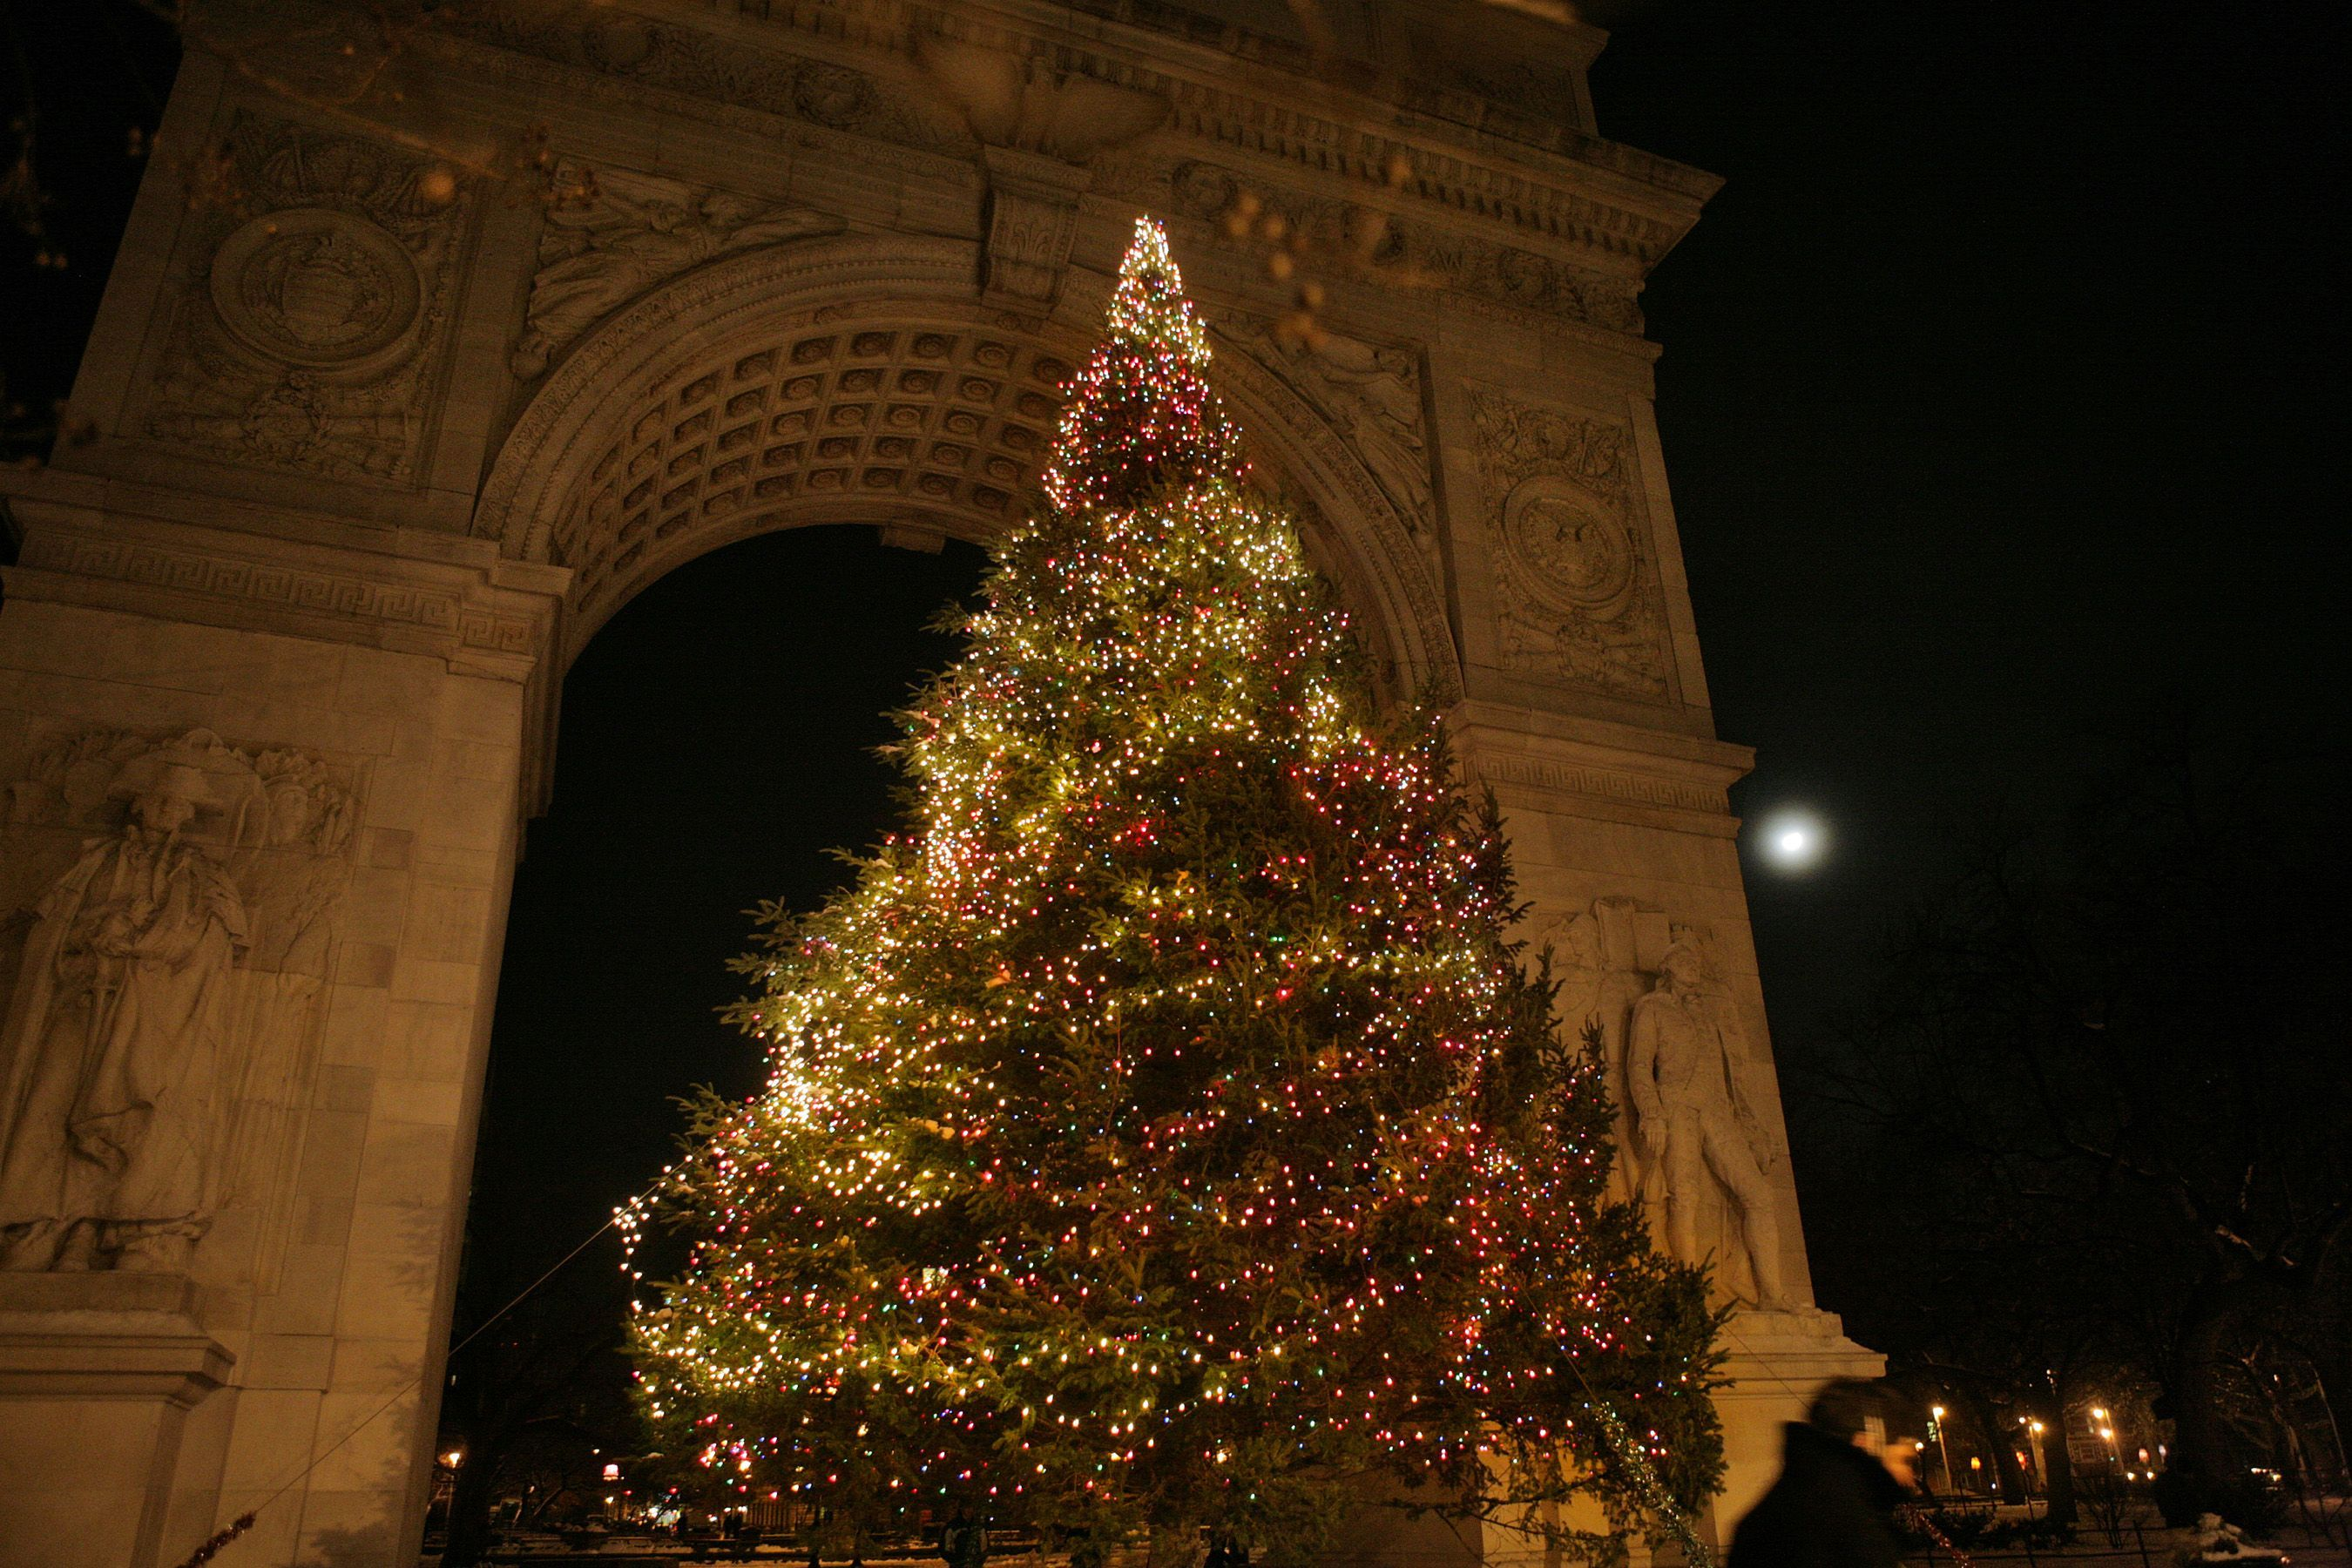 Pin by ORSVP on Free NYC Events | Pinterest | Washington square ...